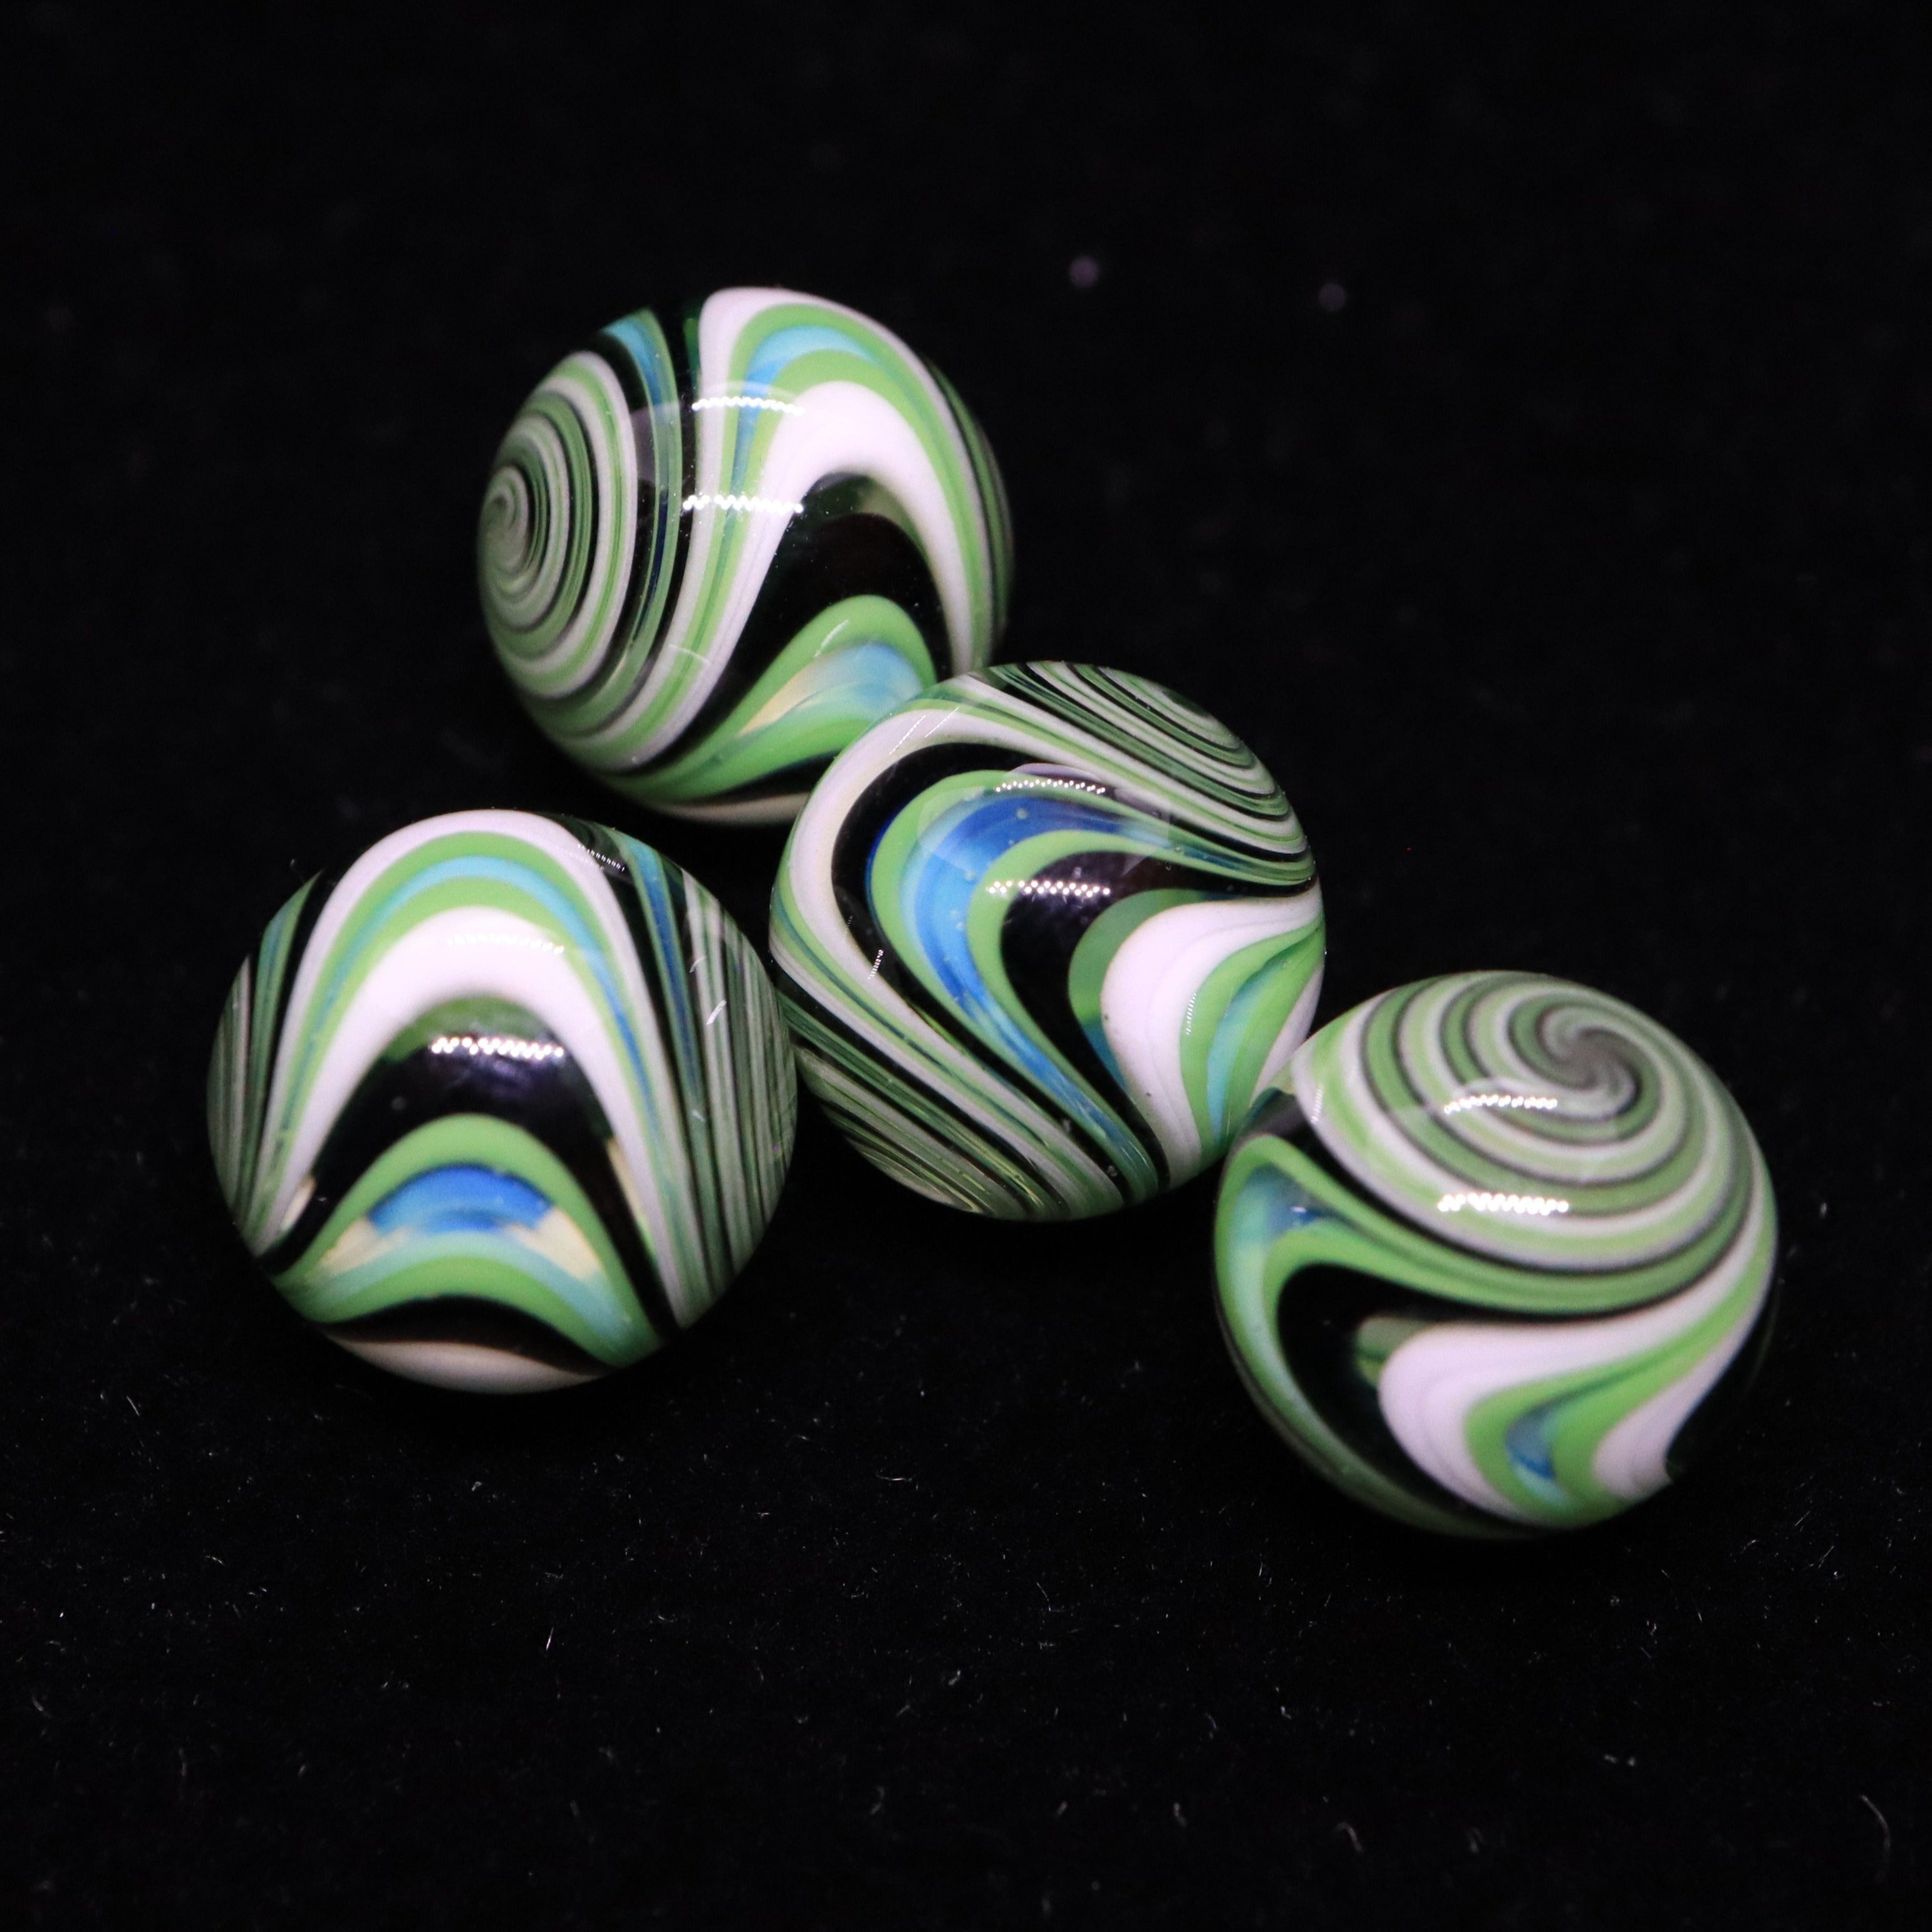 Wig Wag Terp Pearls by Willahelm Glass (6-7mm)